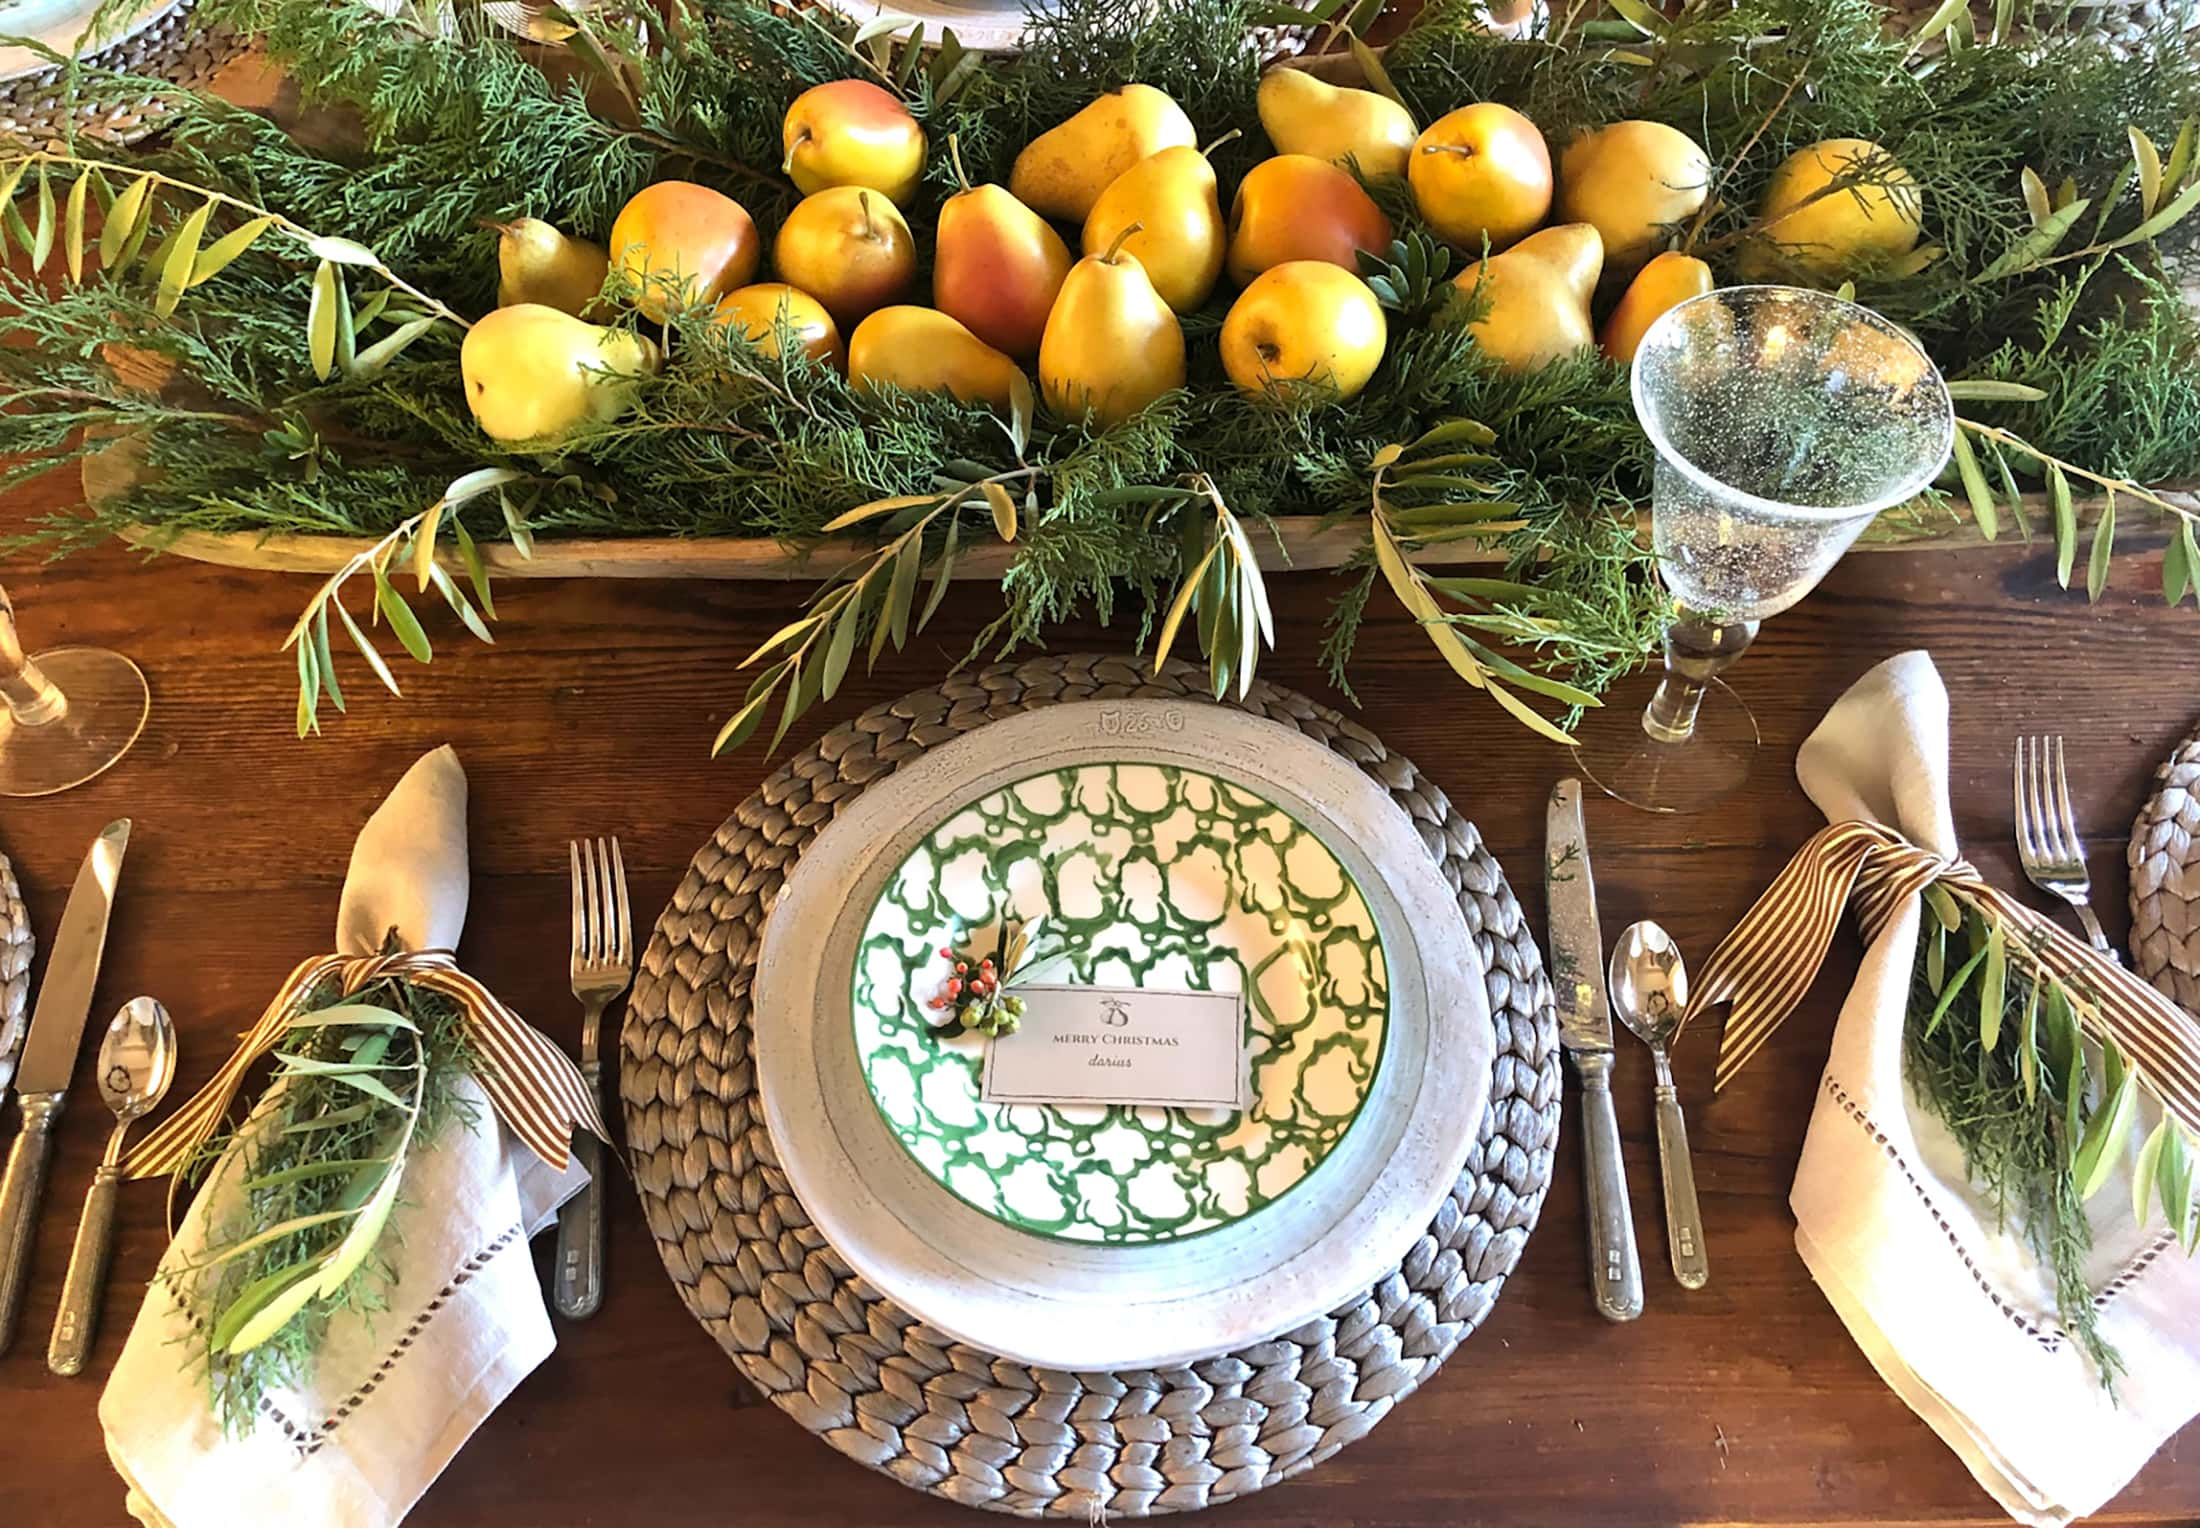 tory burch spongeware salad plates with nametags made on canva cindy hattersley